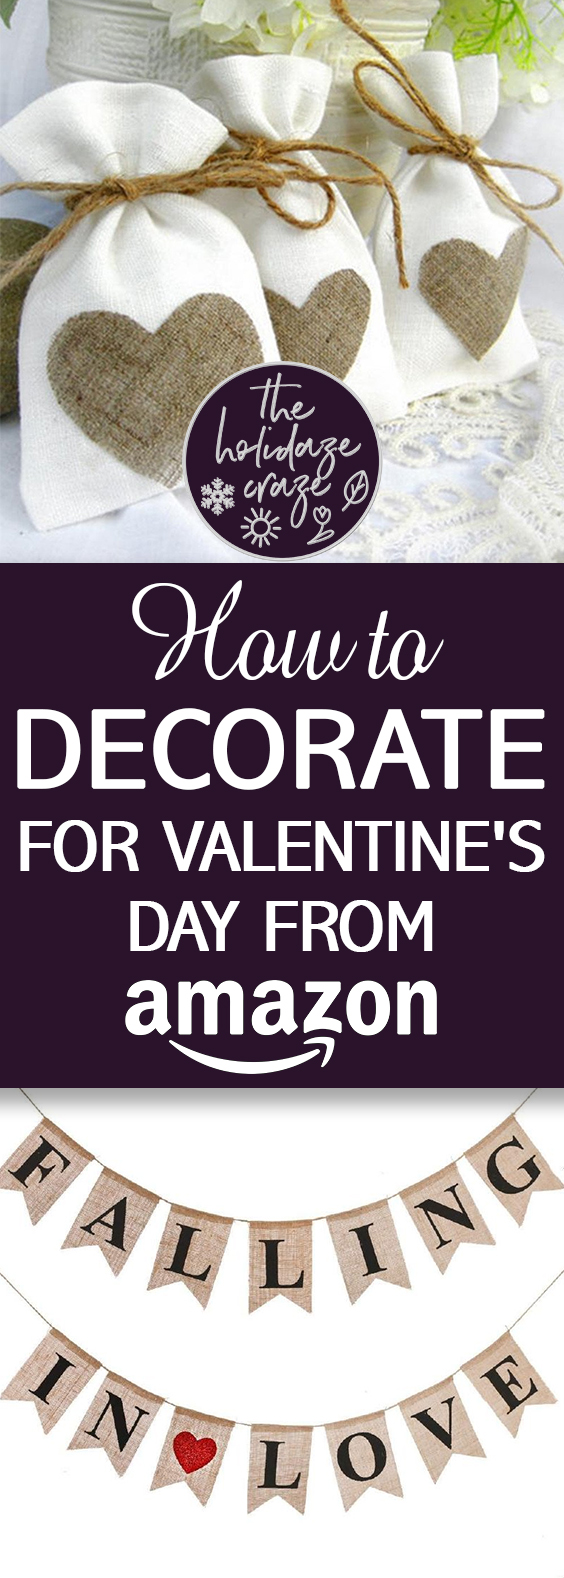 How to Decorate for Valentine's Day from Amazon| Valentines Day, Valentines Day Decor, Valentines Day Amazon Decor, Amazon Decor, DIY Amazon, Amazon Home Decor, Valentines Day, Party Ideas #PartyIdeas #ValentinesDayParty